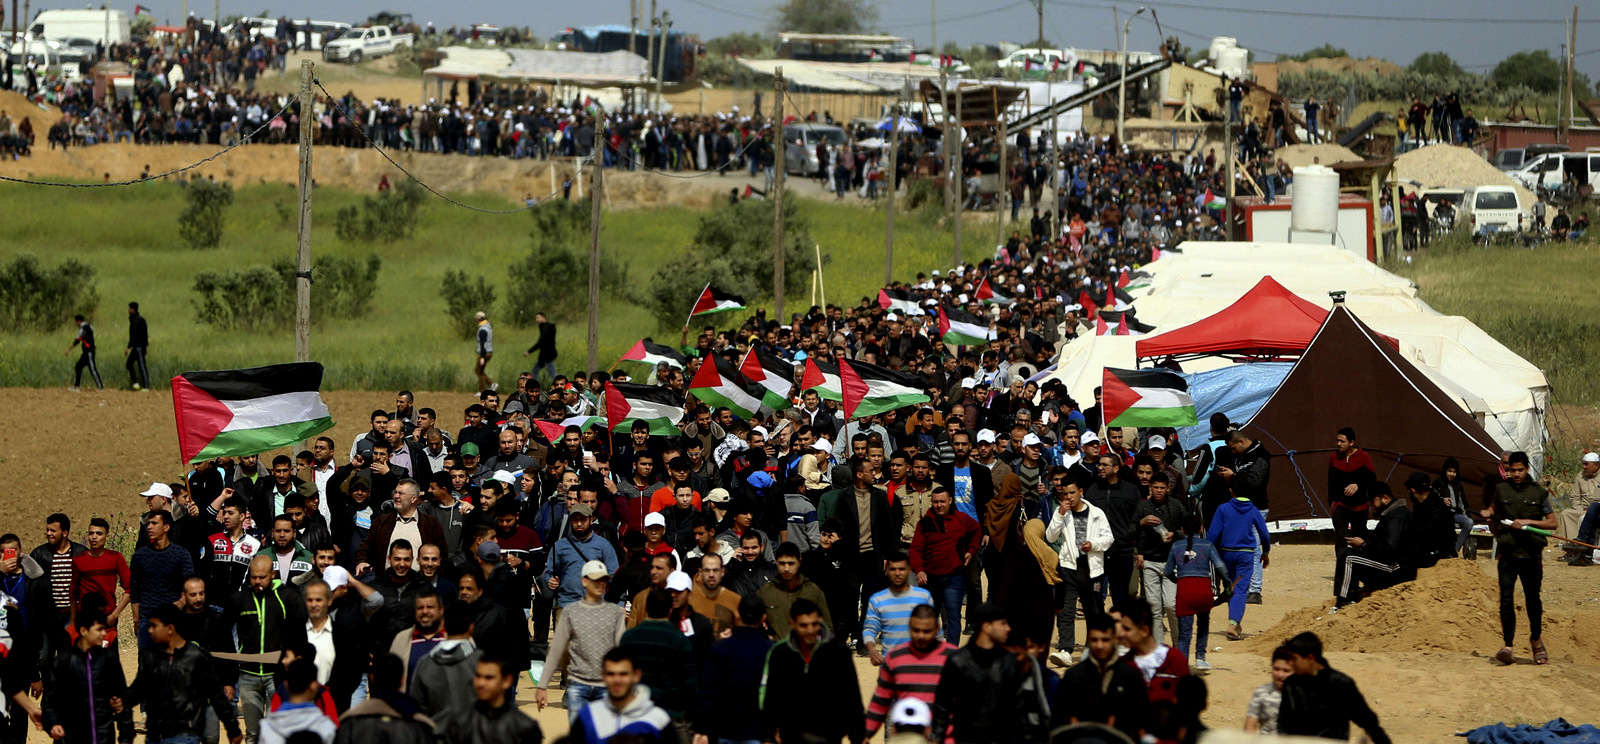 After 70 Years of Repression, Gazans' Great Return March is Modern Exodus